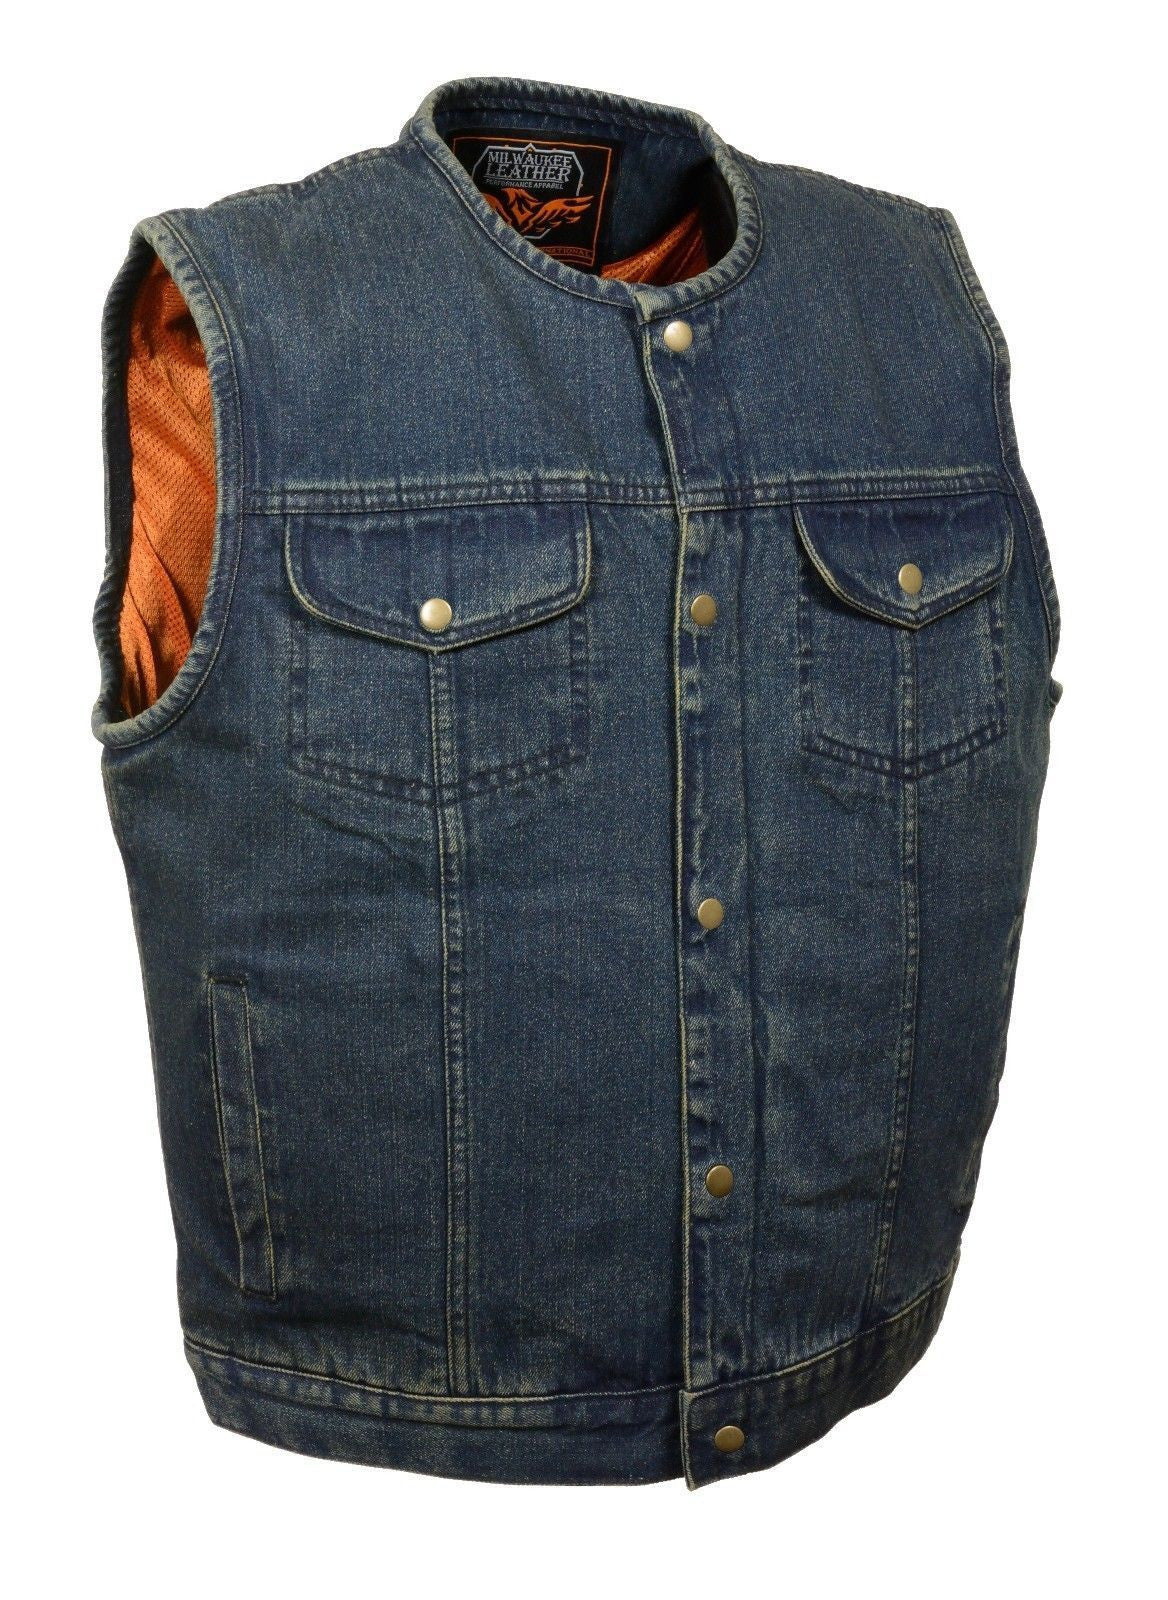 MEN'S BLUE DENIM VEST GUN POCKETS INSIDE W/ SNAPS